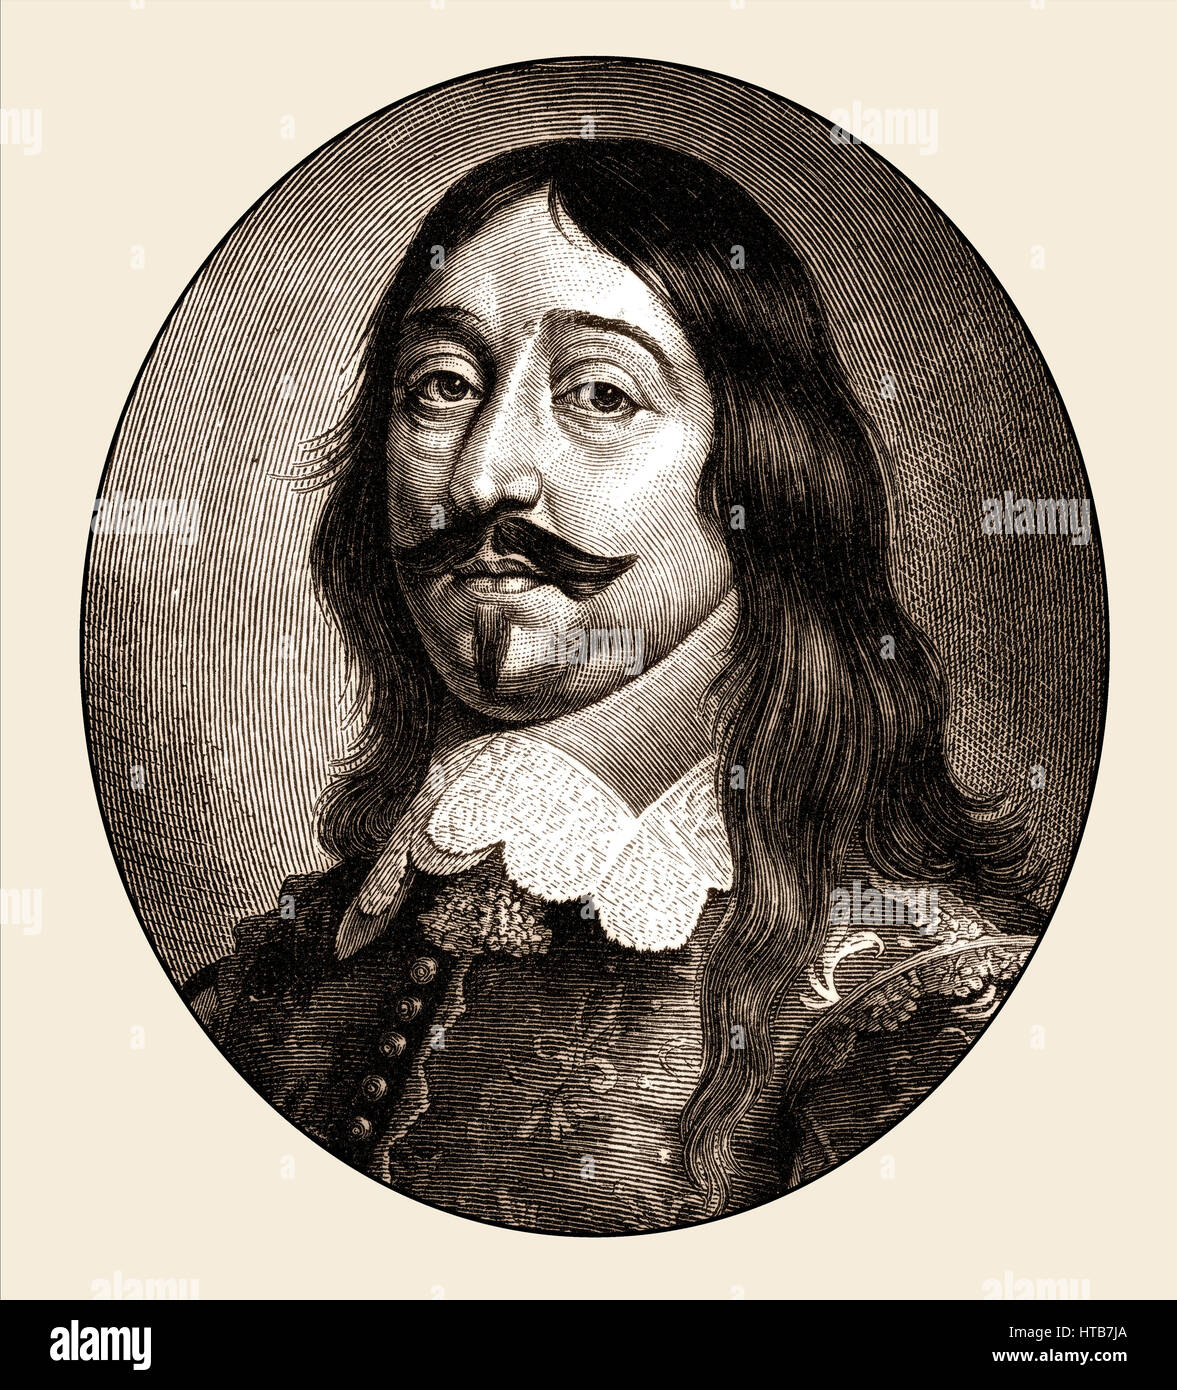 Johann VIII. Graf zu Sayn-Wittgenstein-Wittgenstein, 1601-1657, a German Earl as Swedish colonel, the Thirty Years' - Stock Image